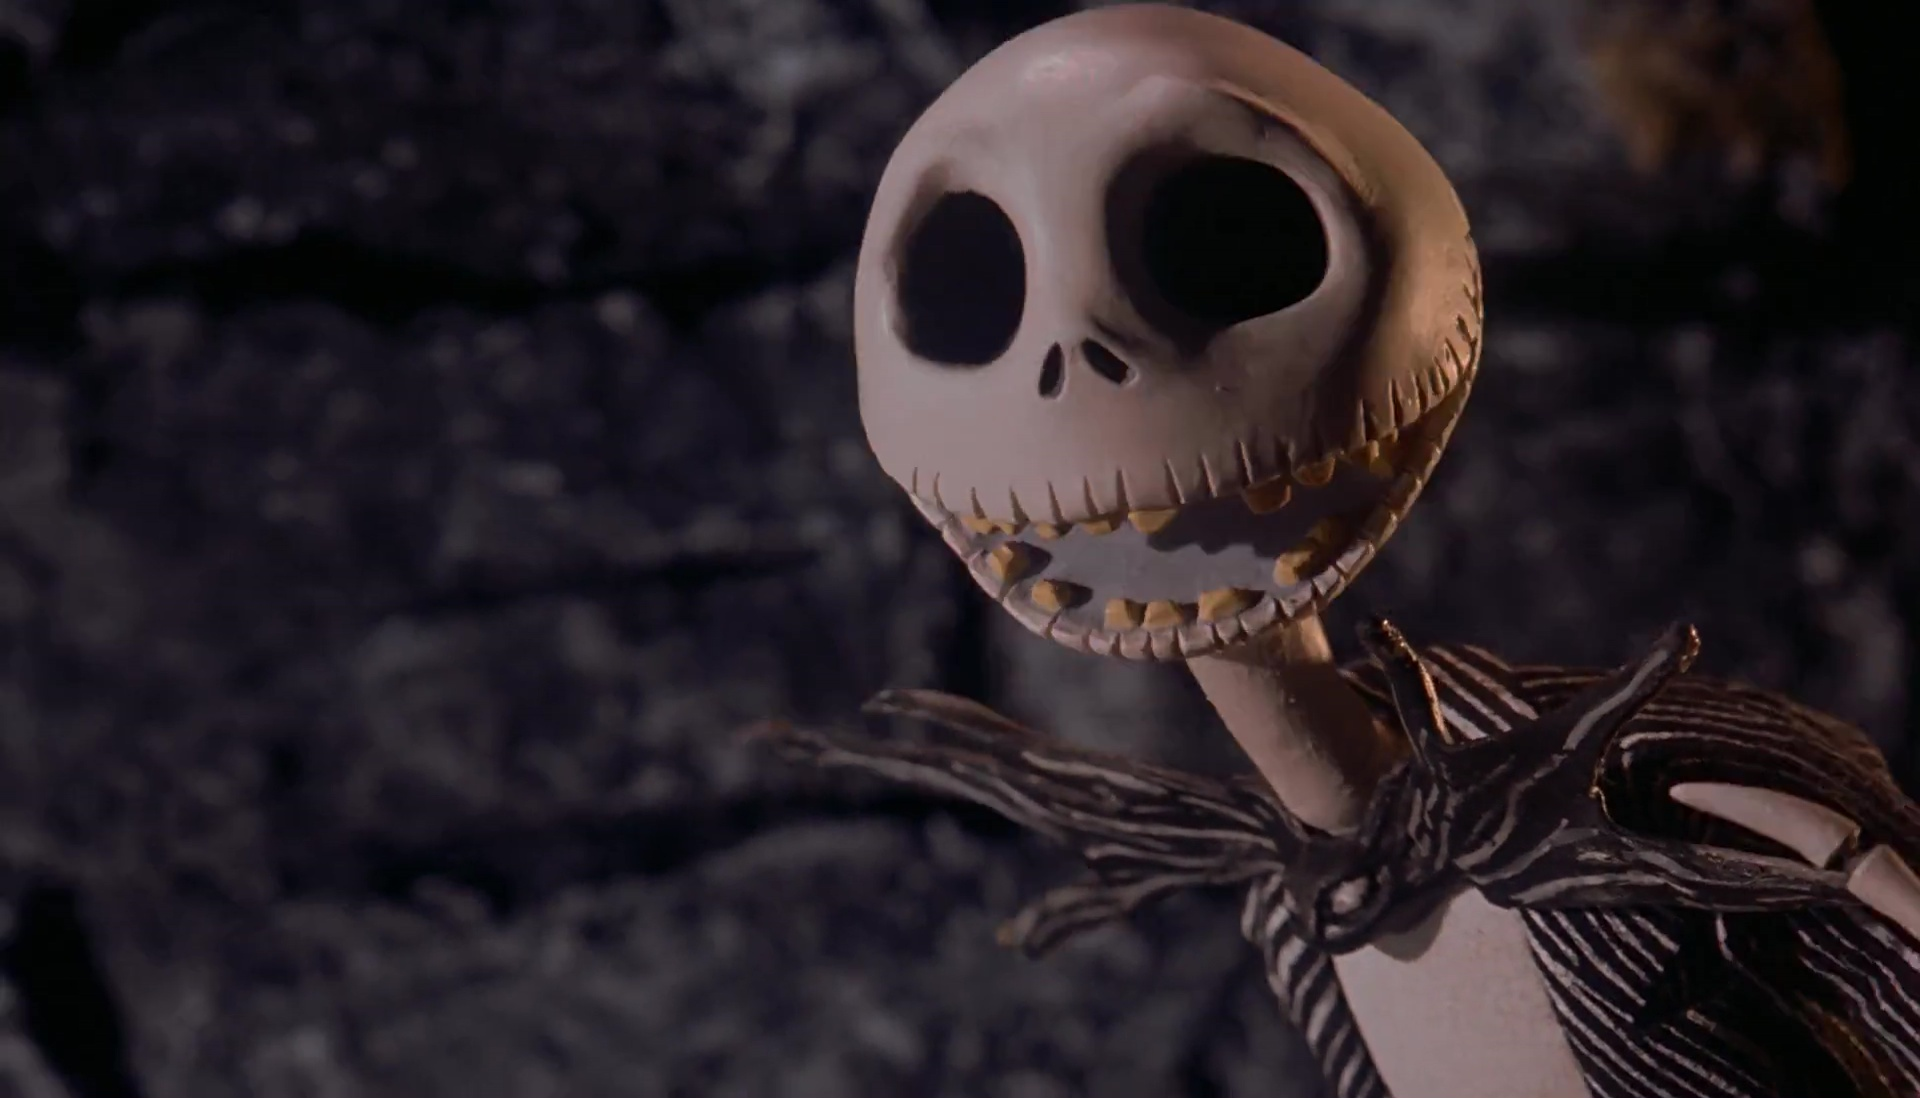 24 Hair-Raising Facts About The Nightmare Before Christmas